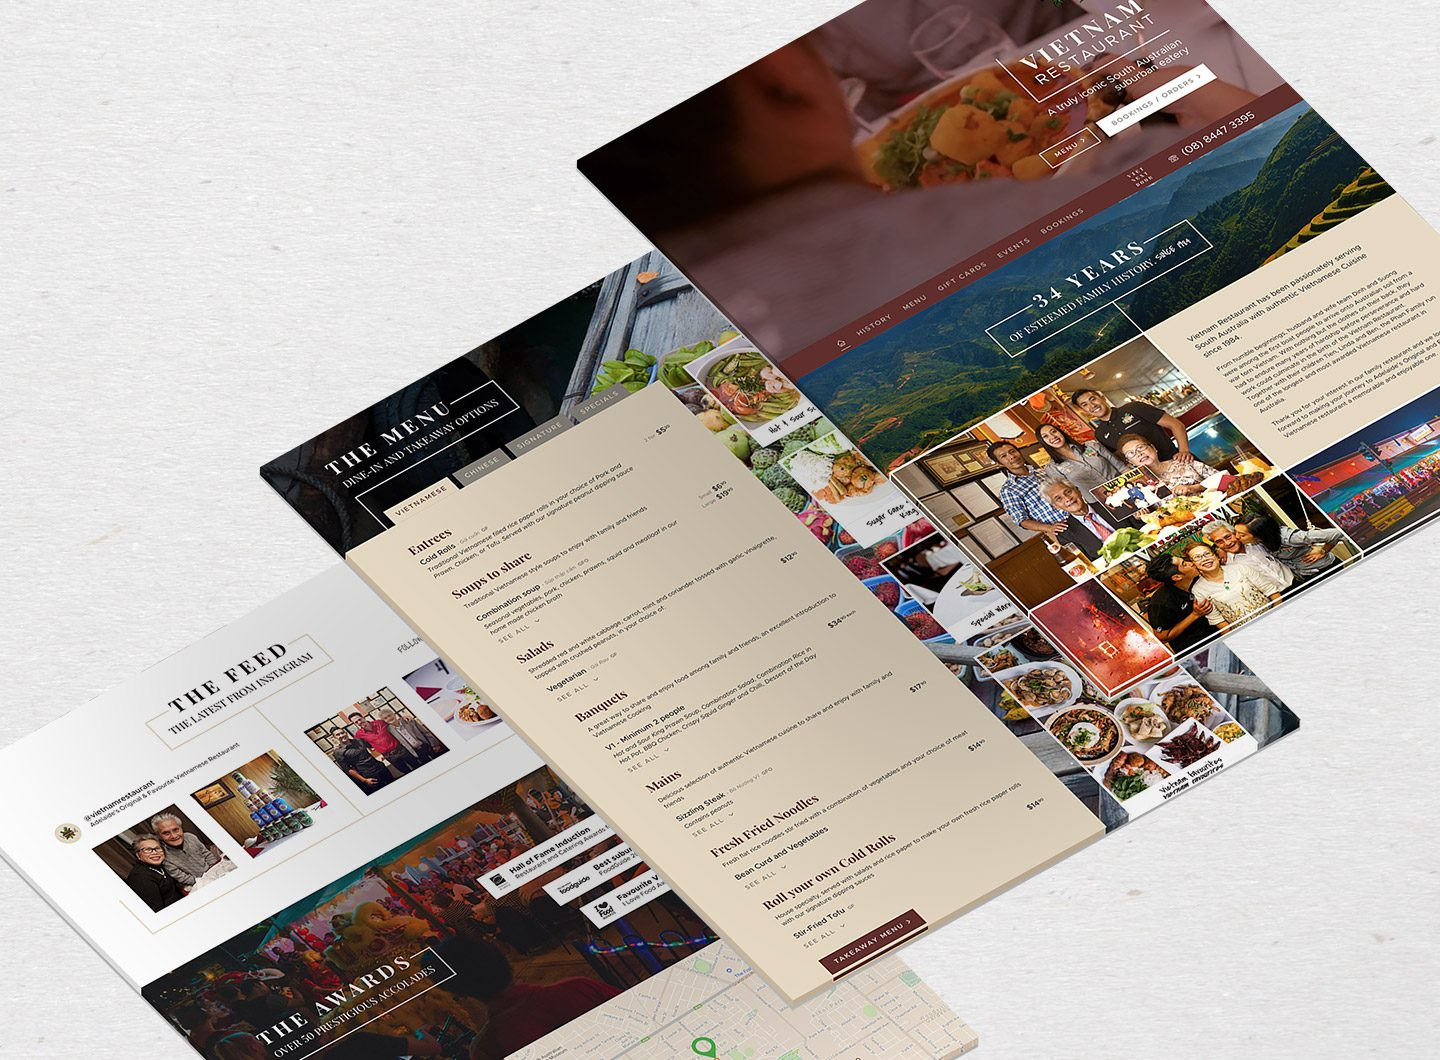 A stack of website designs showing the Vietnam Restaurant website